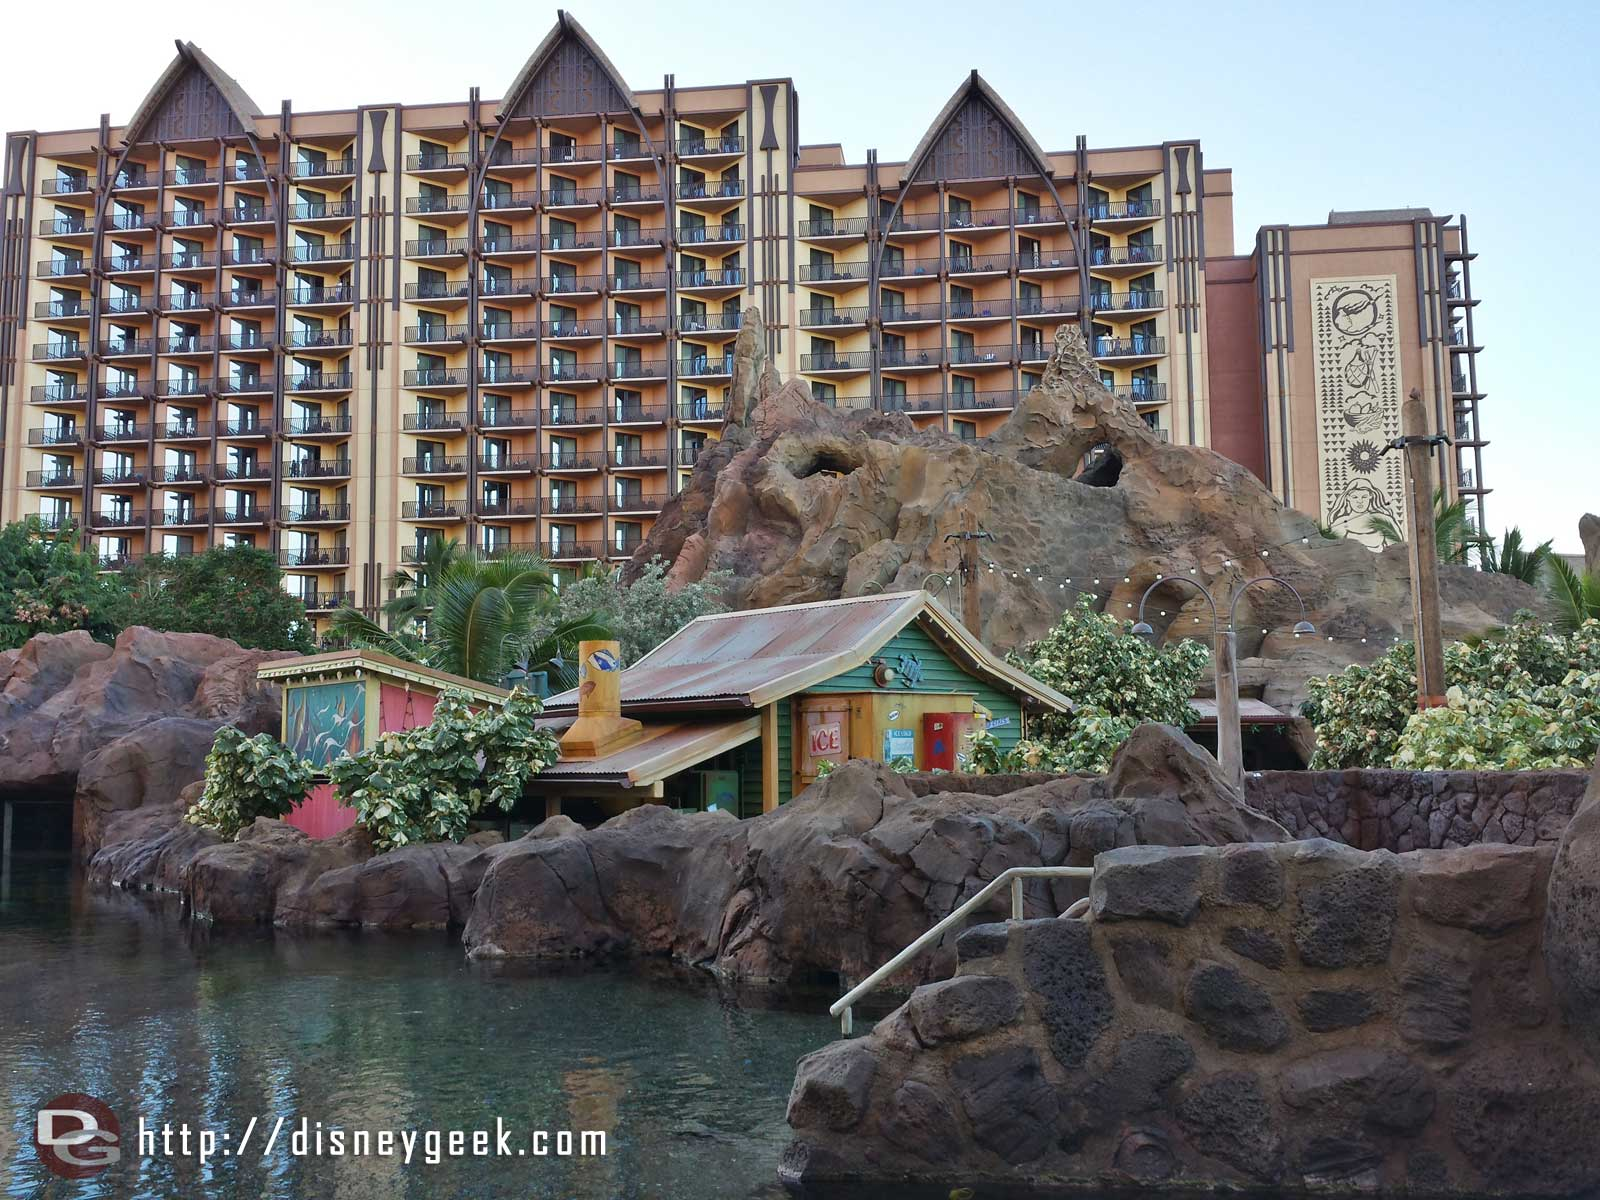 Good morning from #Aulani. A look at Rainbow Reef